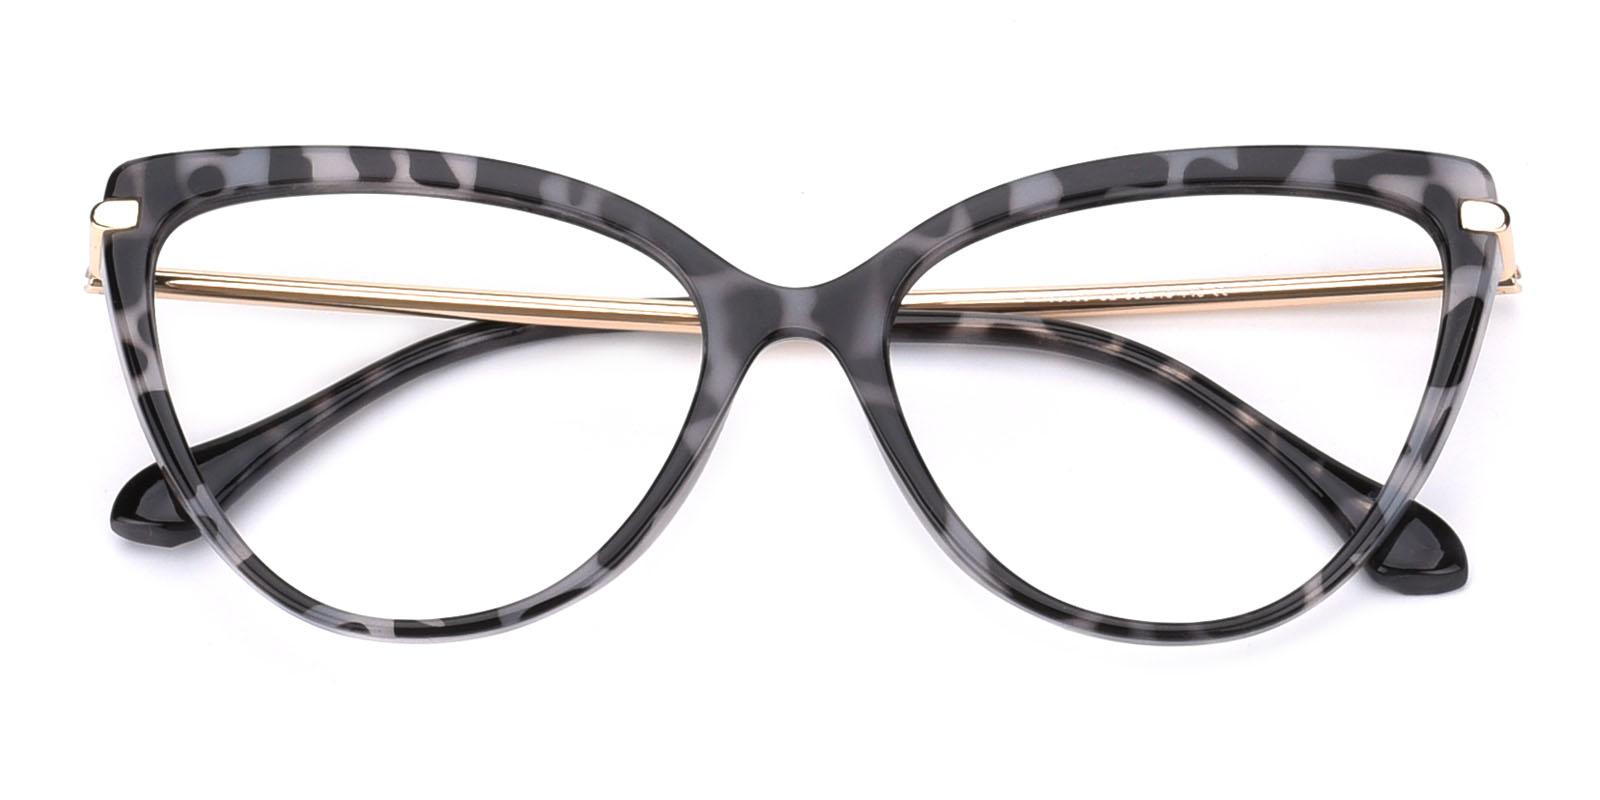 Doris-Leopard-Cat-Combination-Eyeglasses-detail